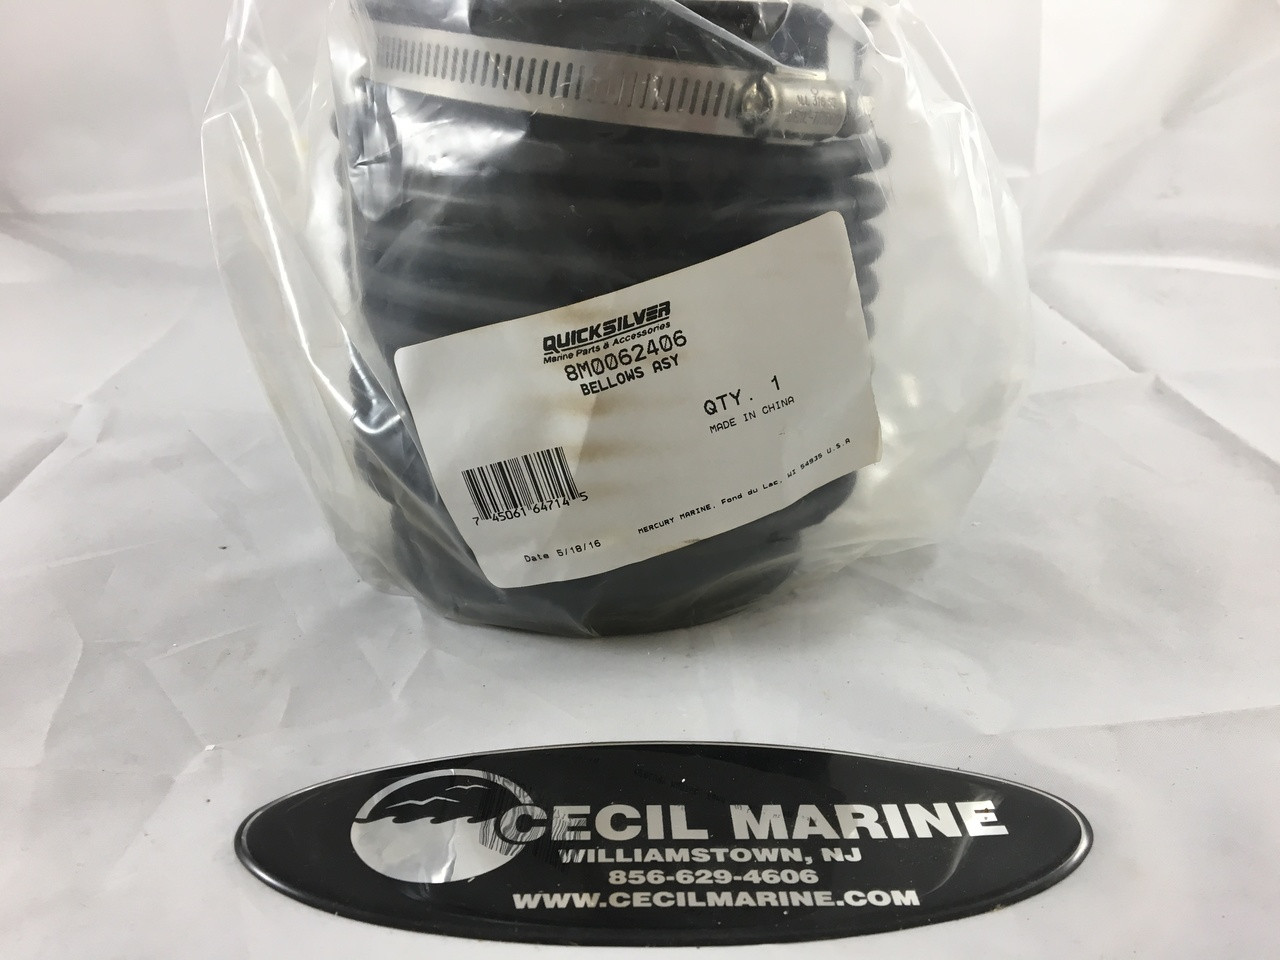 ** $75.50 **GENUINE MERCRUISER U JOINT BELLOWS - 8M0062406 ** IN STOCK & READY TO SHIP! **